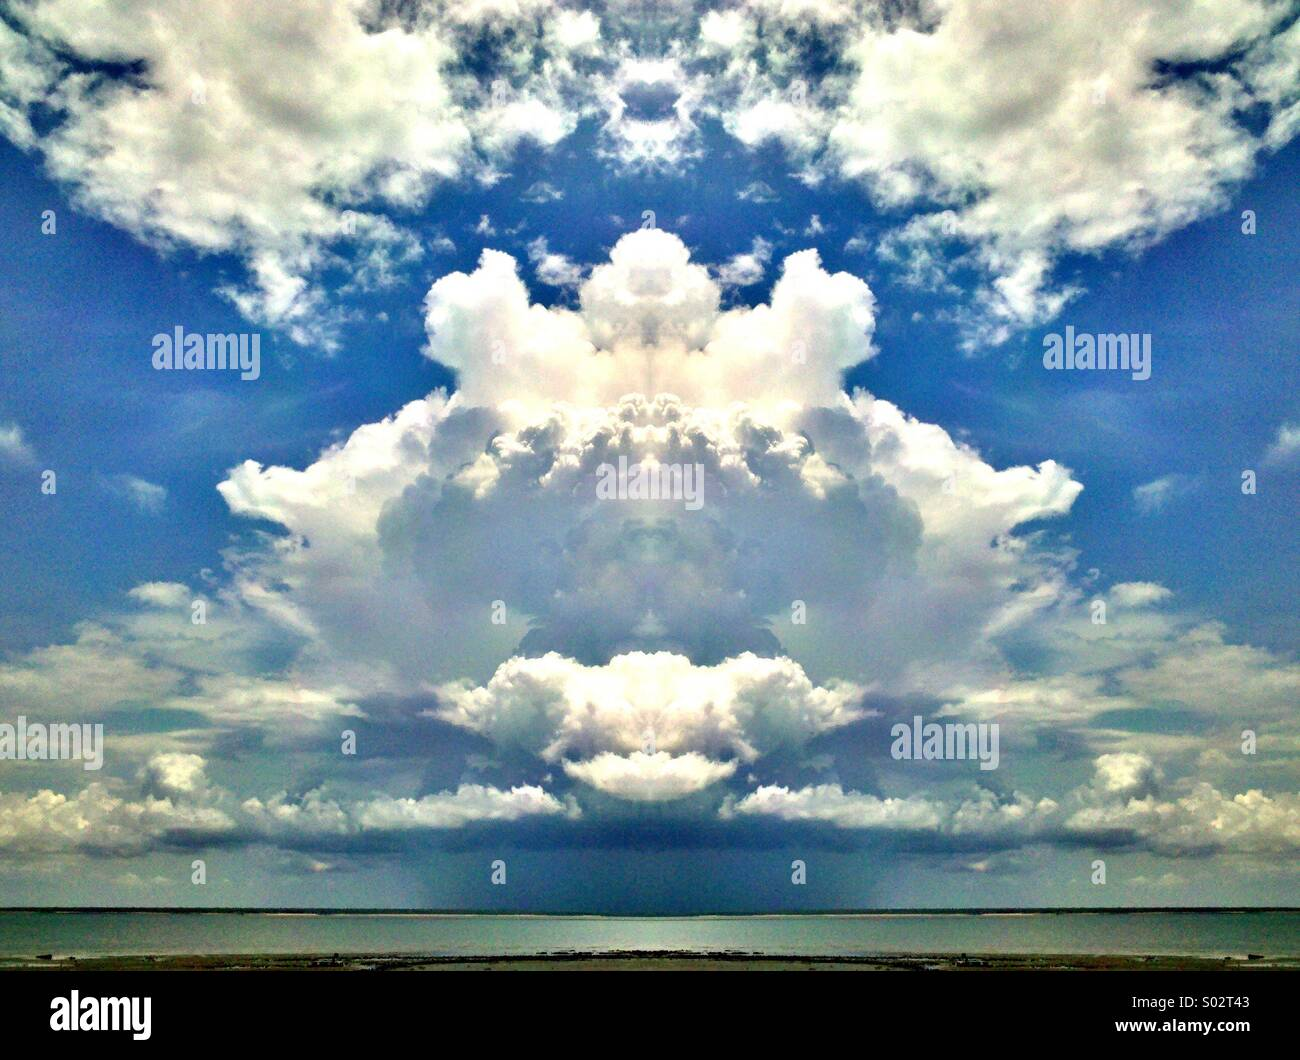 Manipulated clouds. - Stock Image